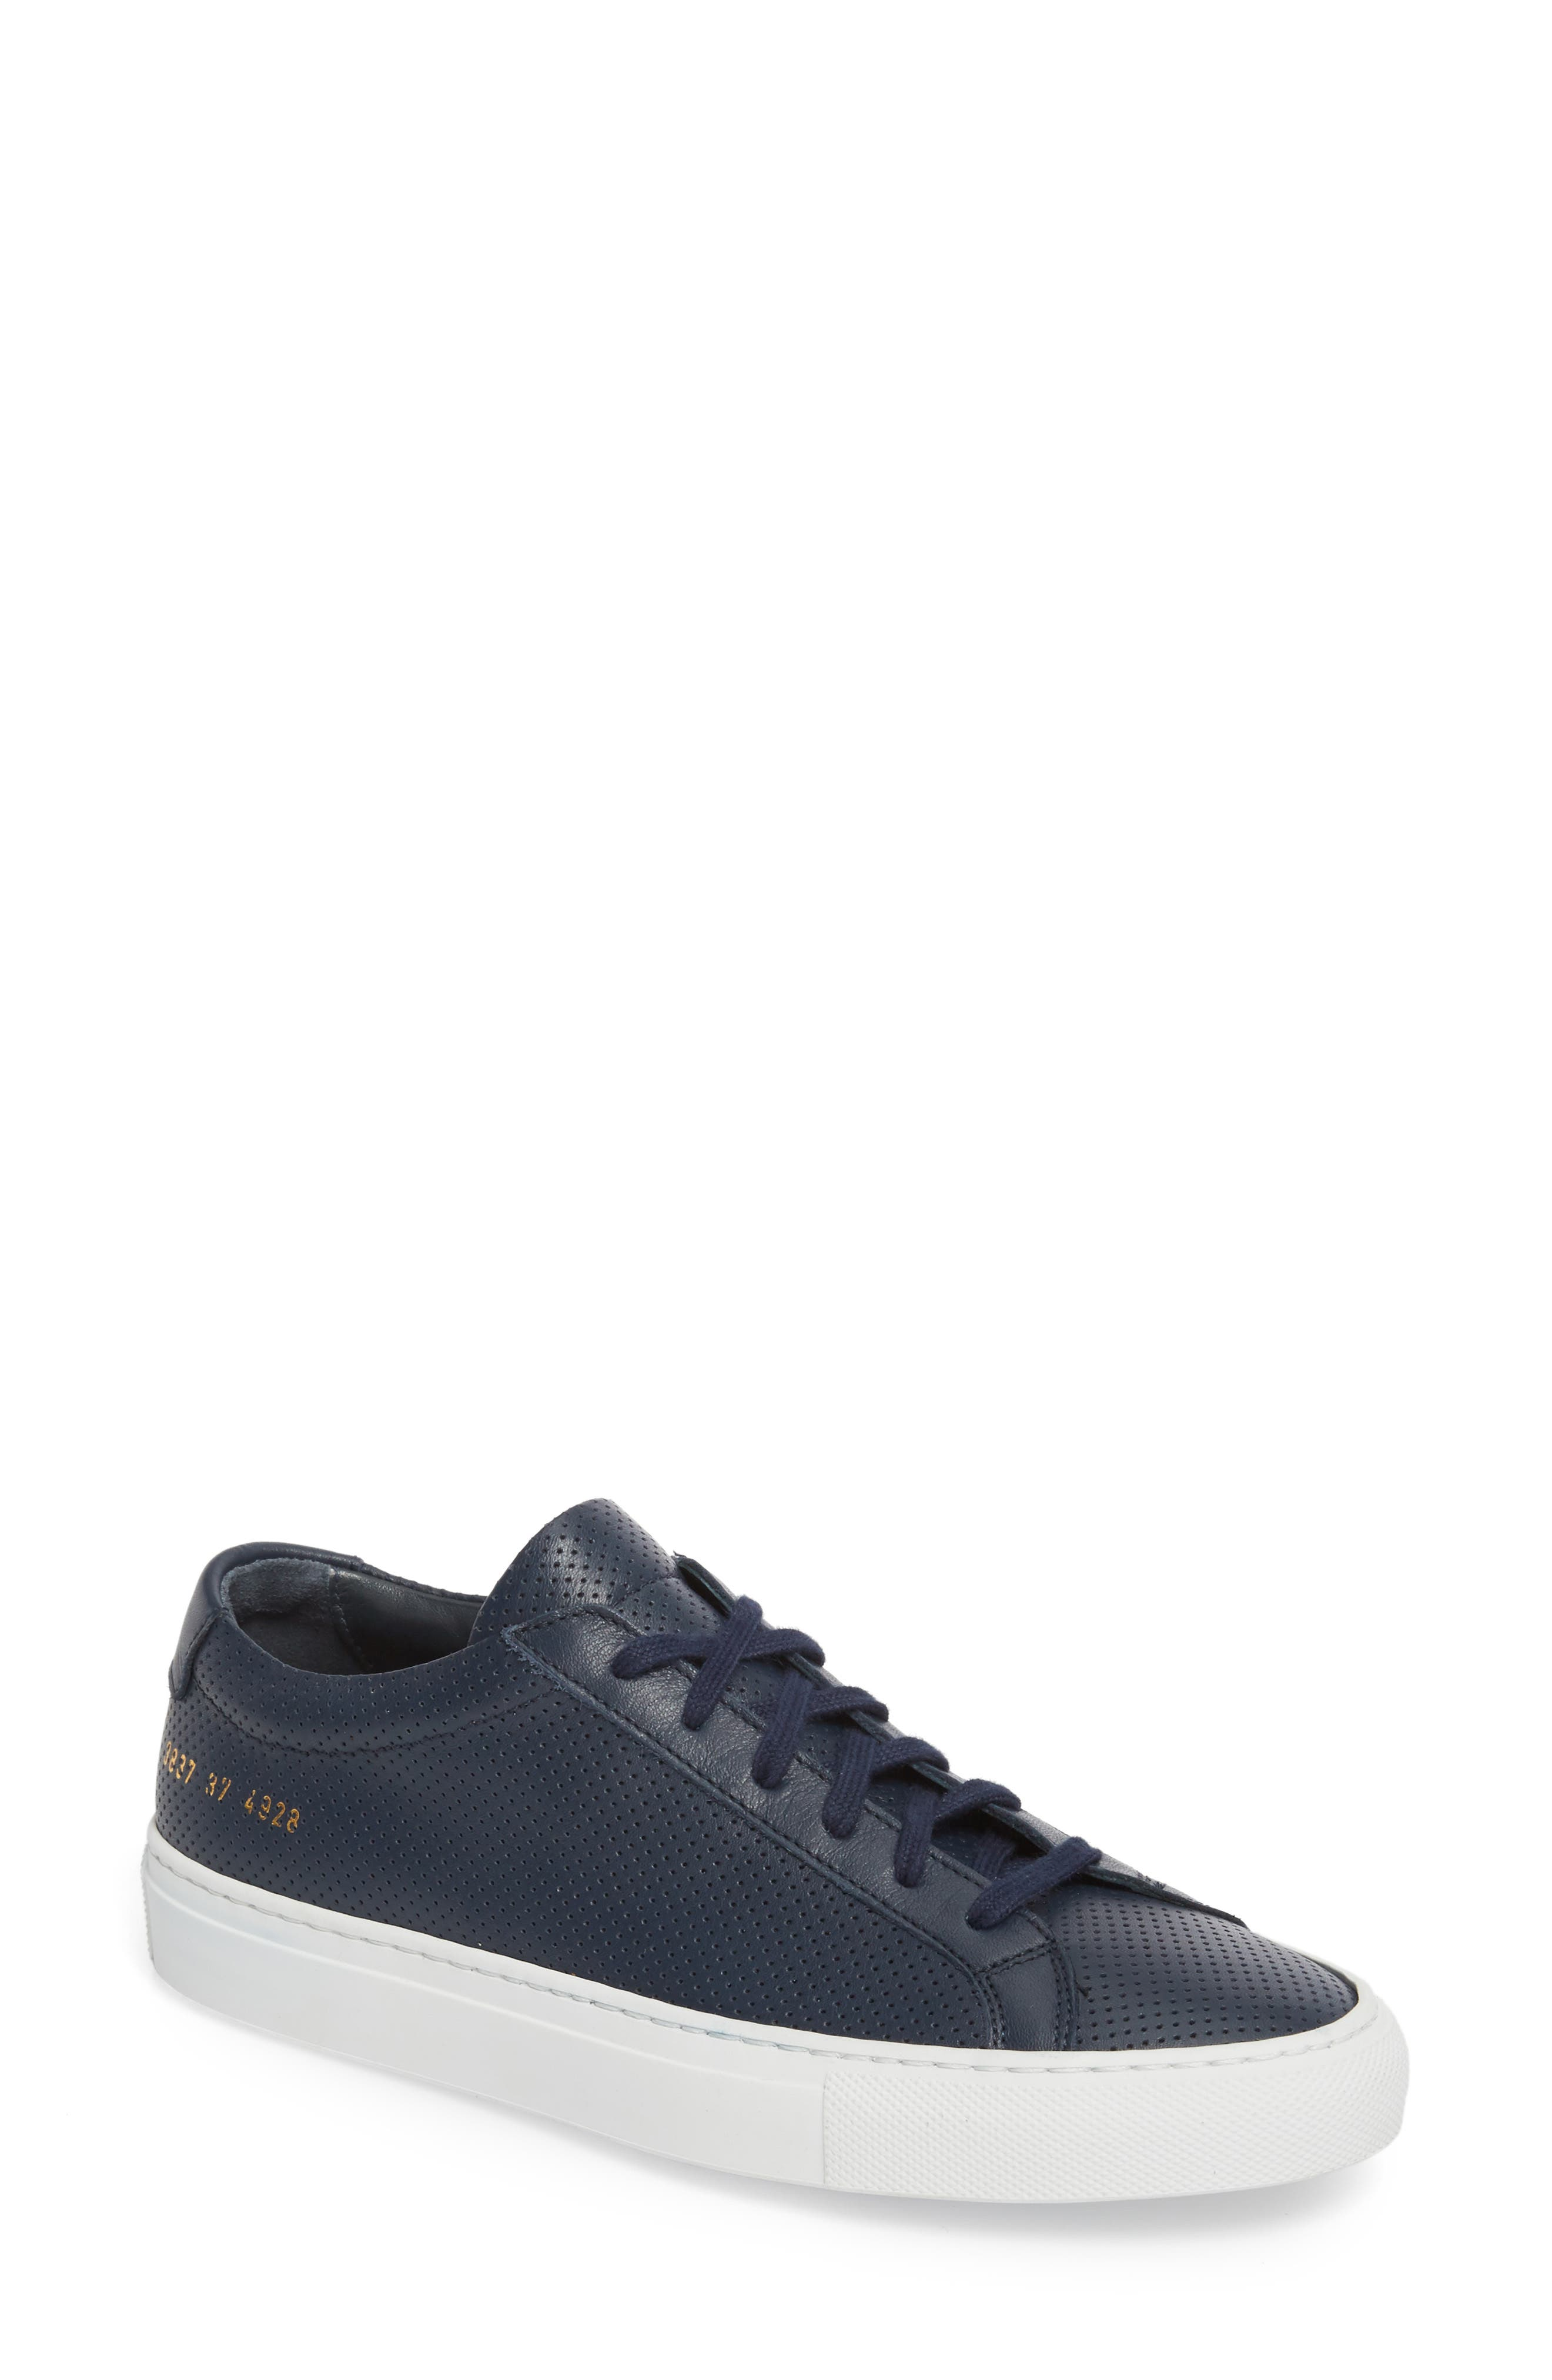 Original Achilles Perforated Low Sneaker,                             Main thumbnail 1, color,                             Navy